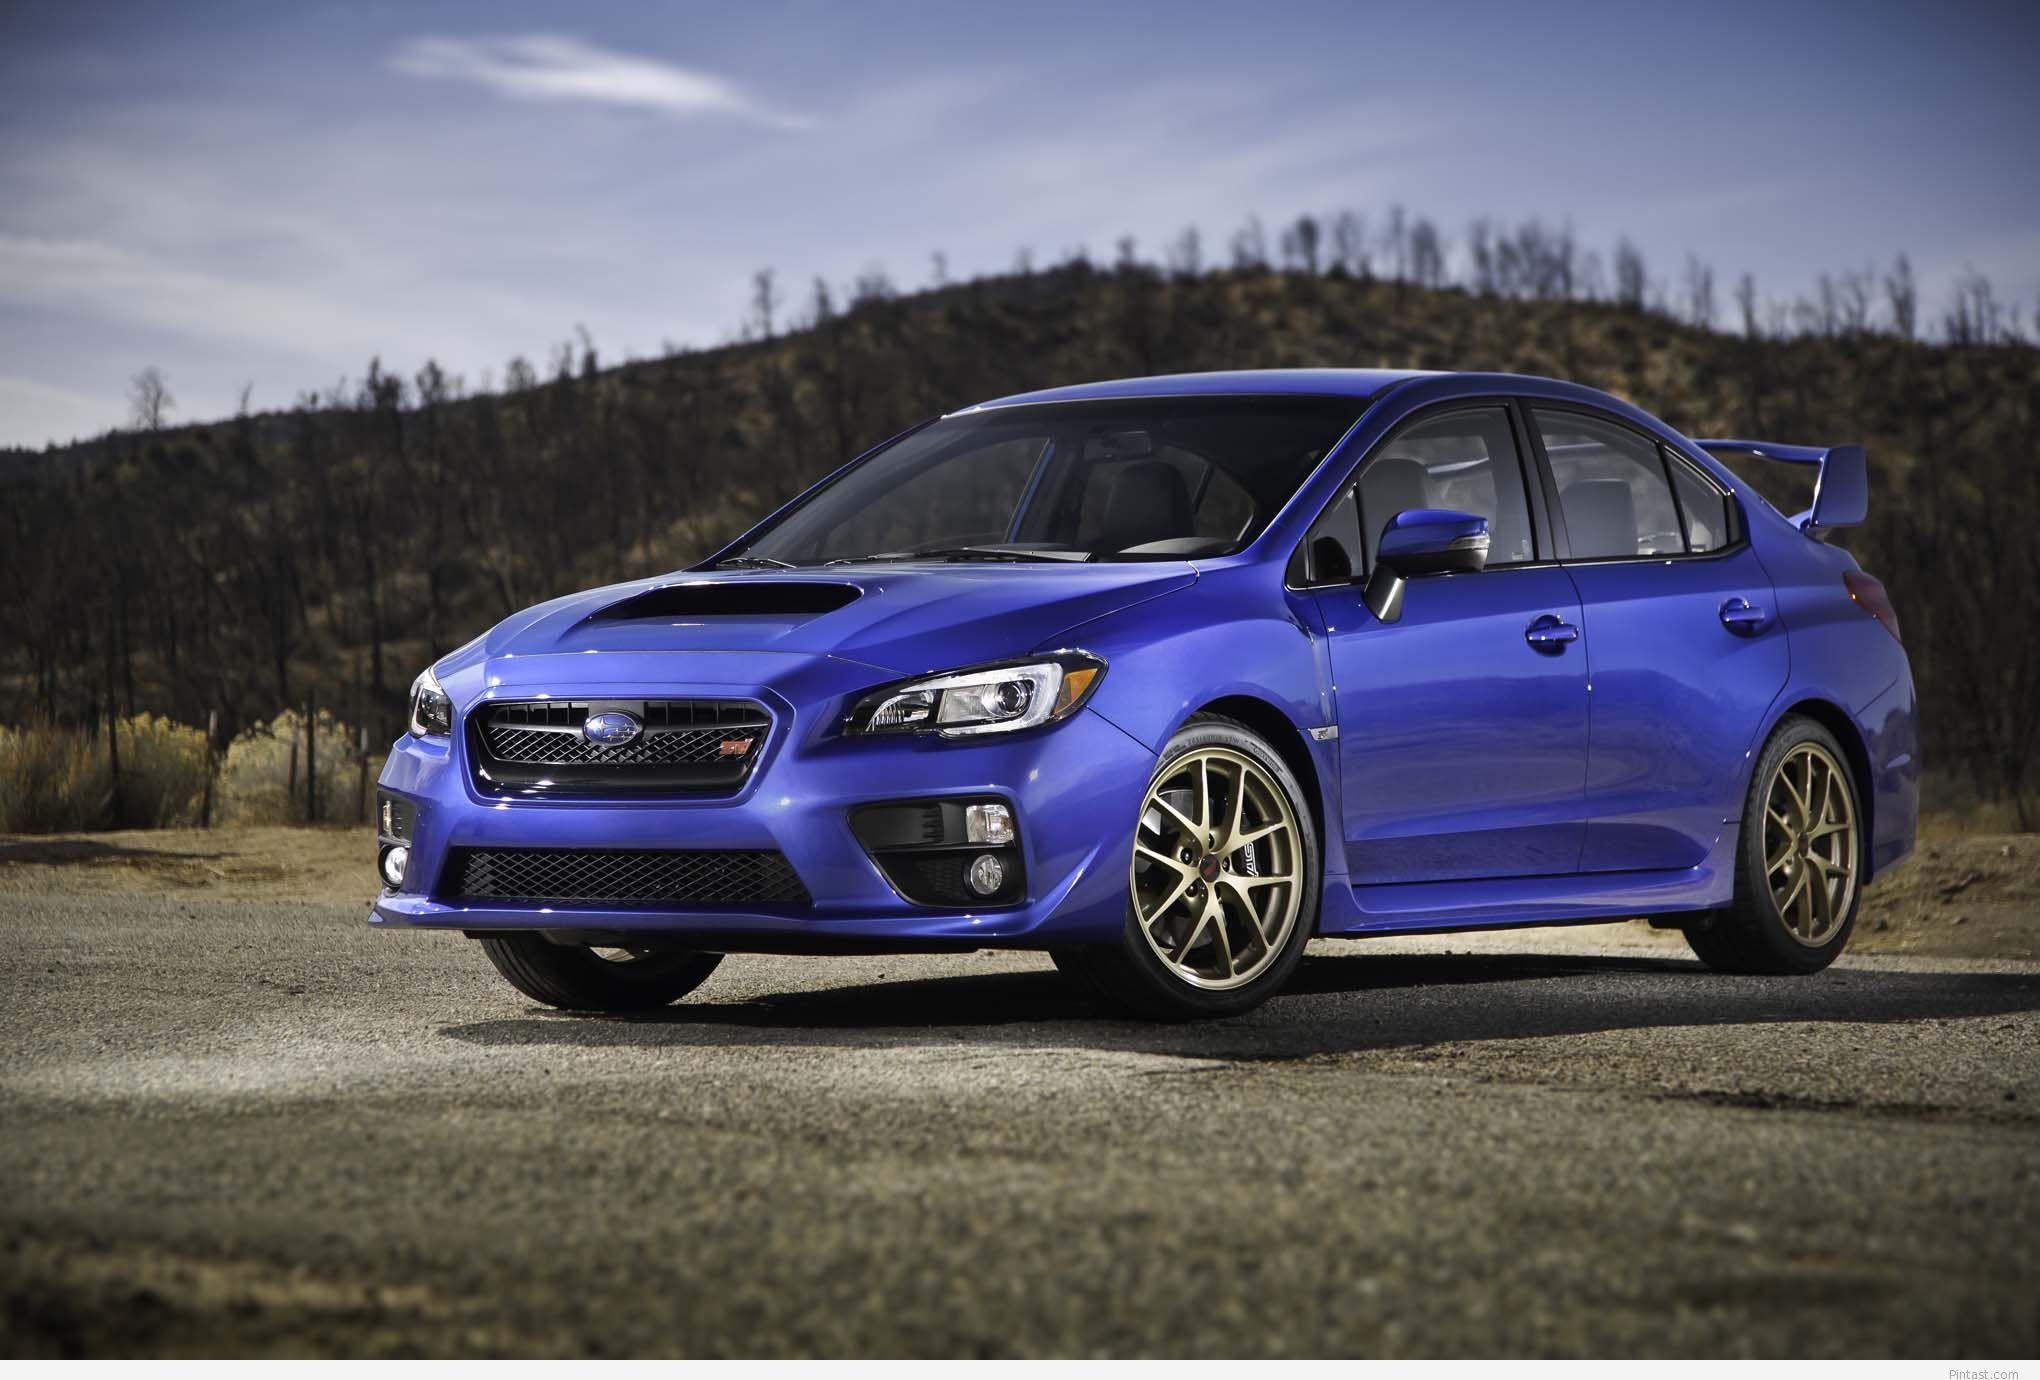 Subaru Wrx Sti Wallpapers | 4USkY.com